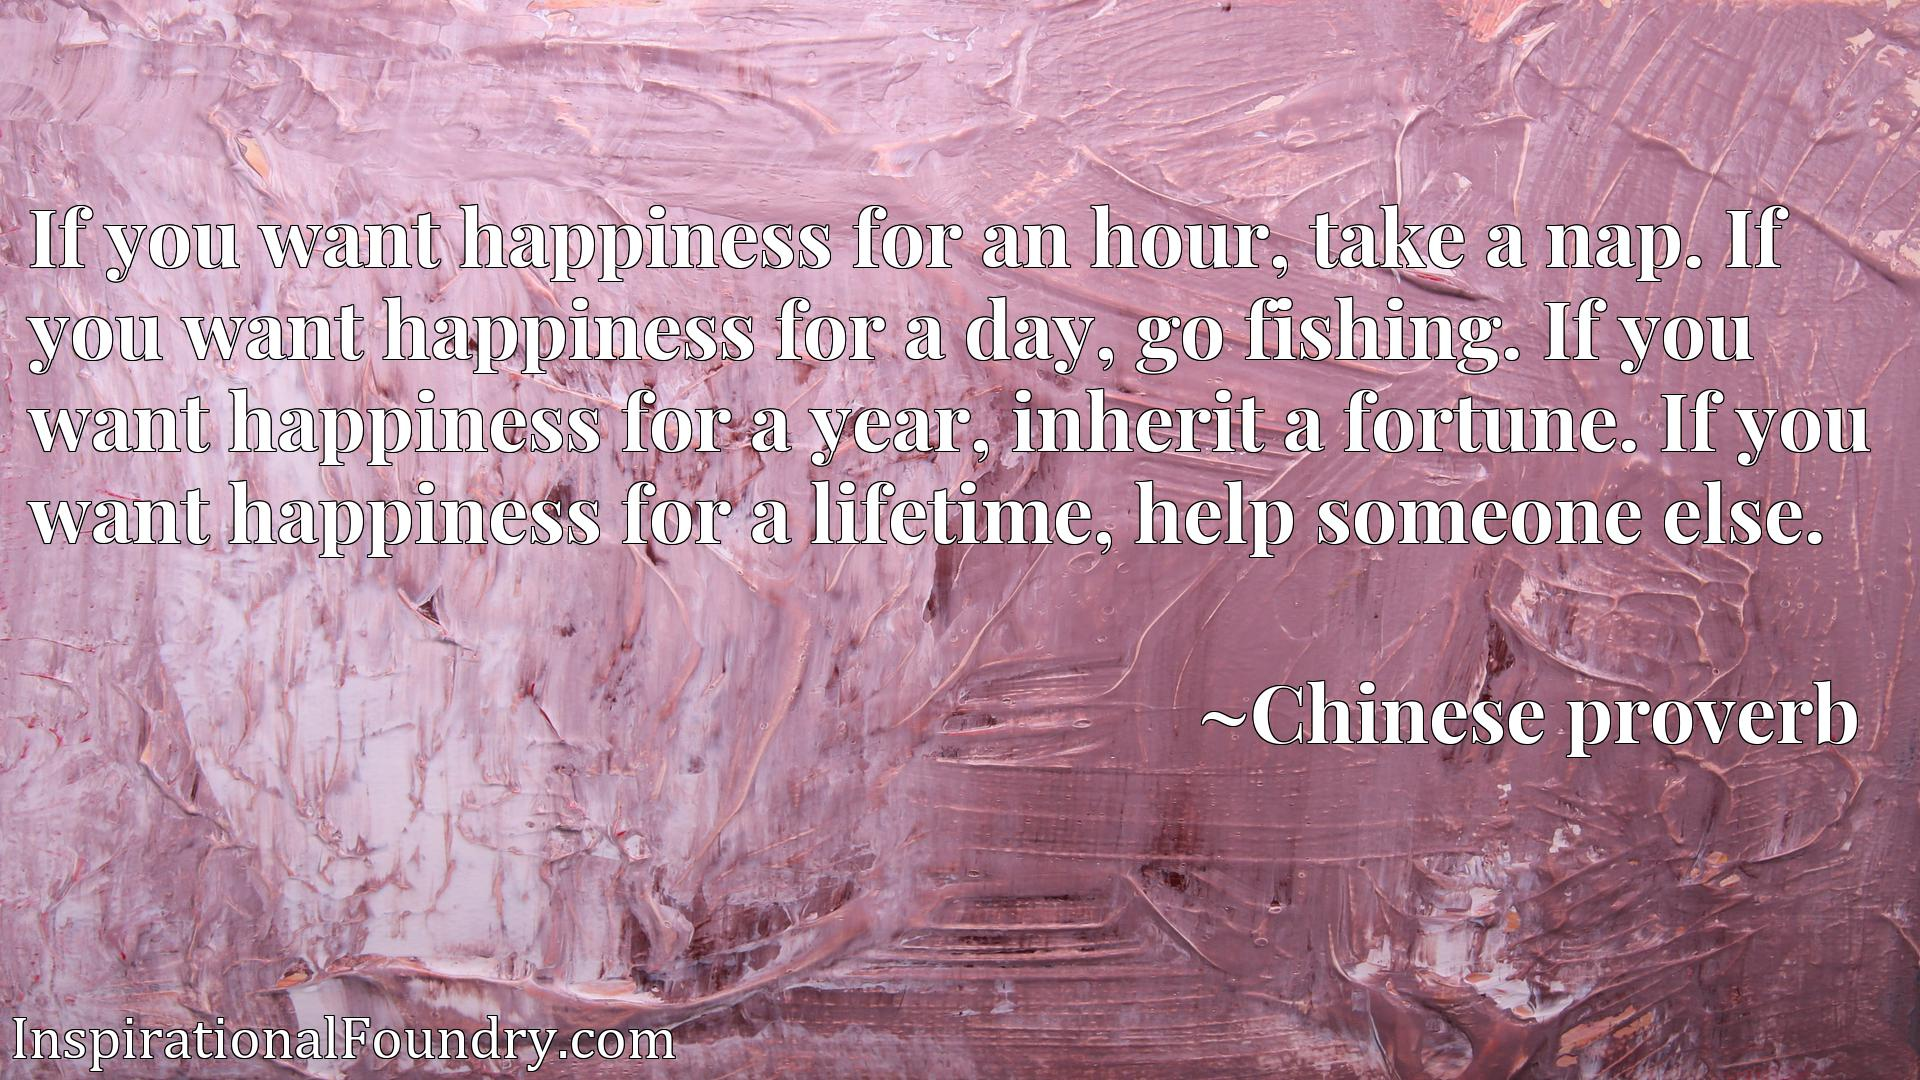 If you want happiness for an hour, take a nap. If you want happiness for a day, go fishing. If you want happiness for a year, inherit a fortune. If you want happiness for a lifetime, help someone else.